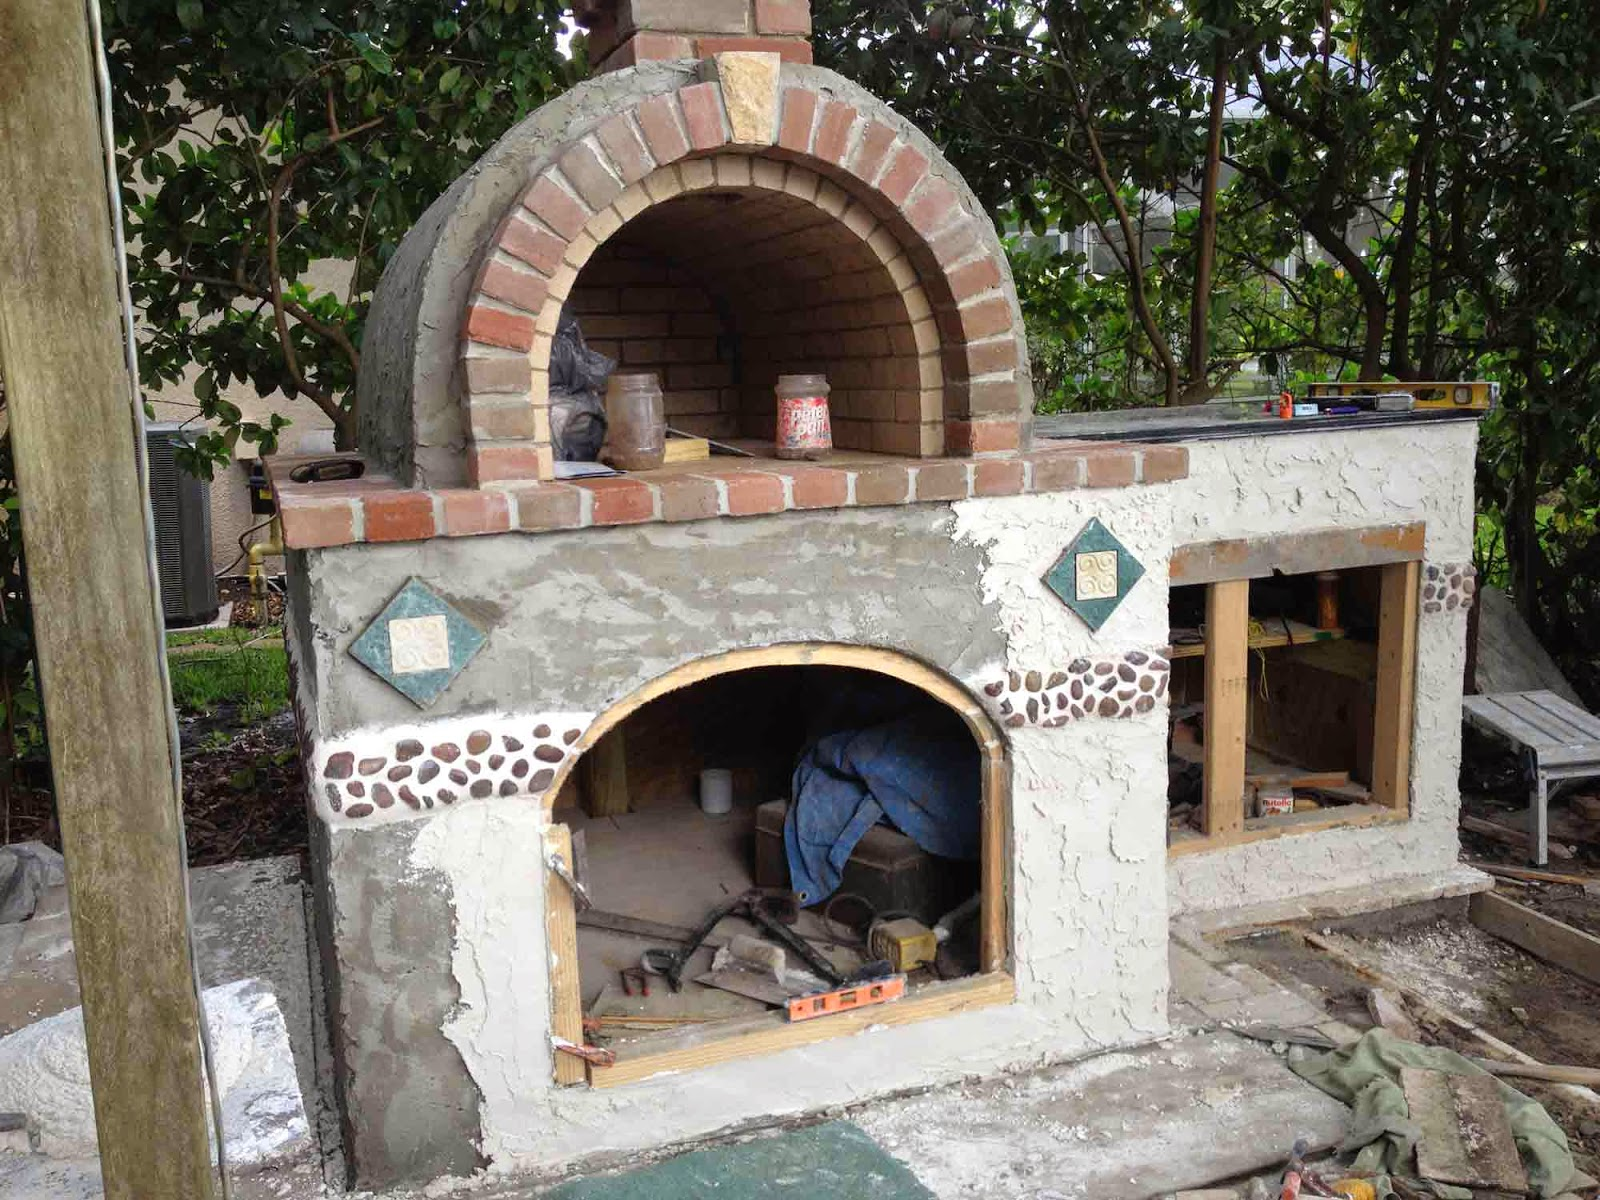 Pizza Oven Outdoor Pizza Oven Pizza Ovens Wood Fired Pizza Oven Pizza